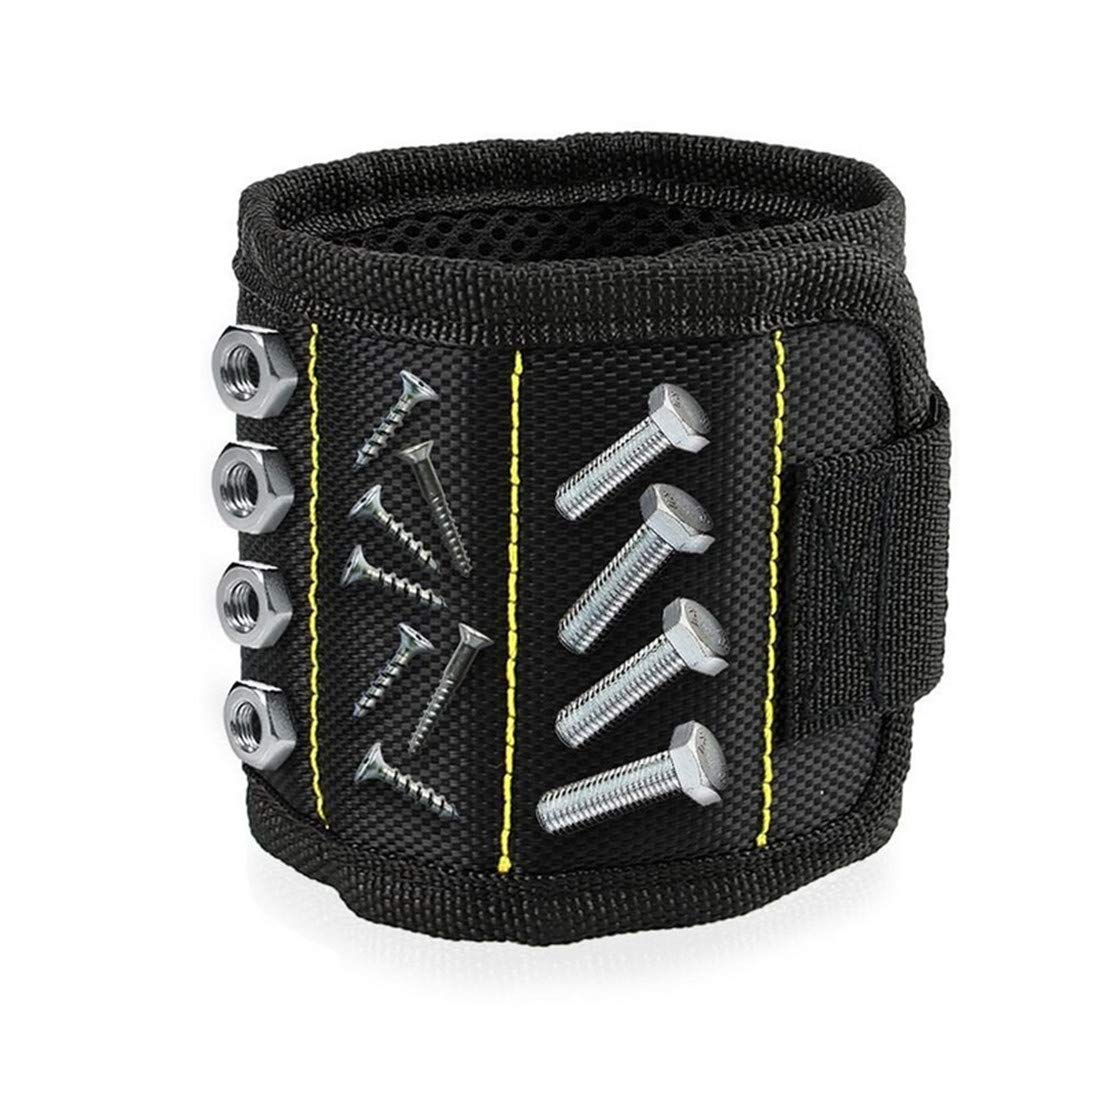 ECYC Polyester Magnetic Wristband Portable Electrician Wrist Tool Belt Screws Nails Drill Bits Holder, Black by ECYC (Image #1)